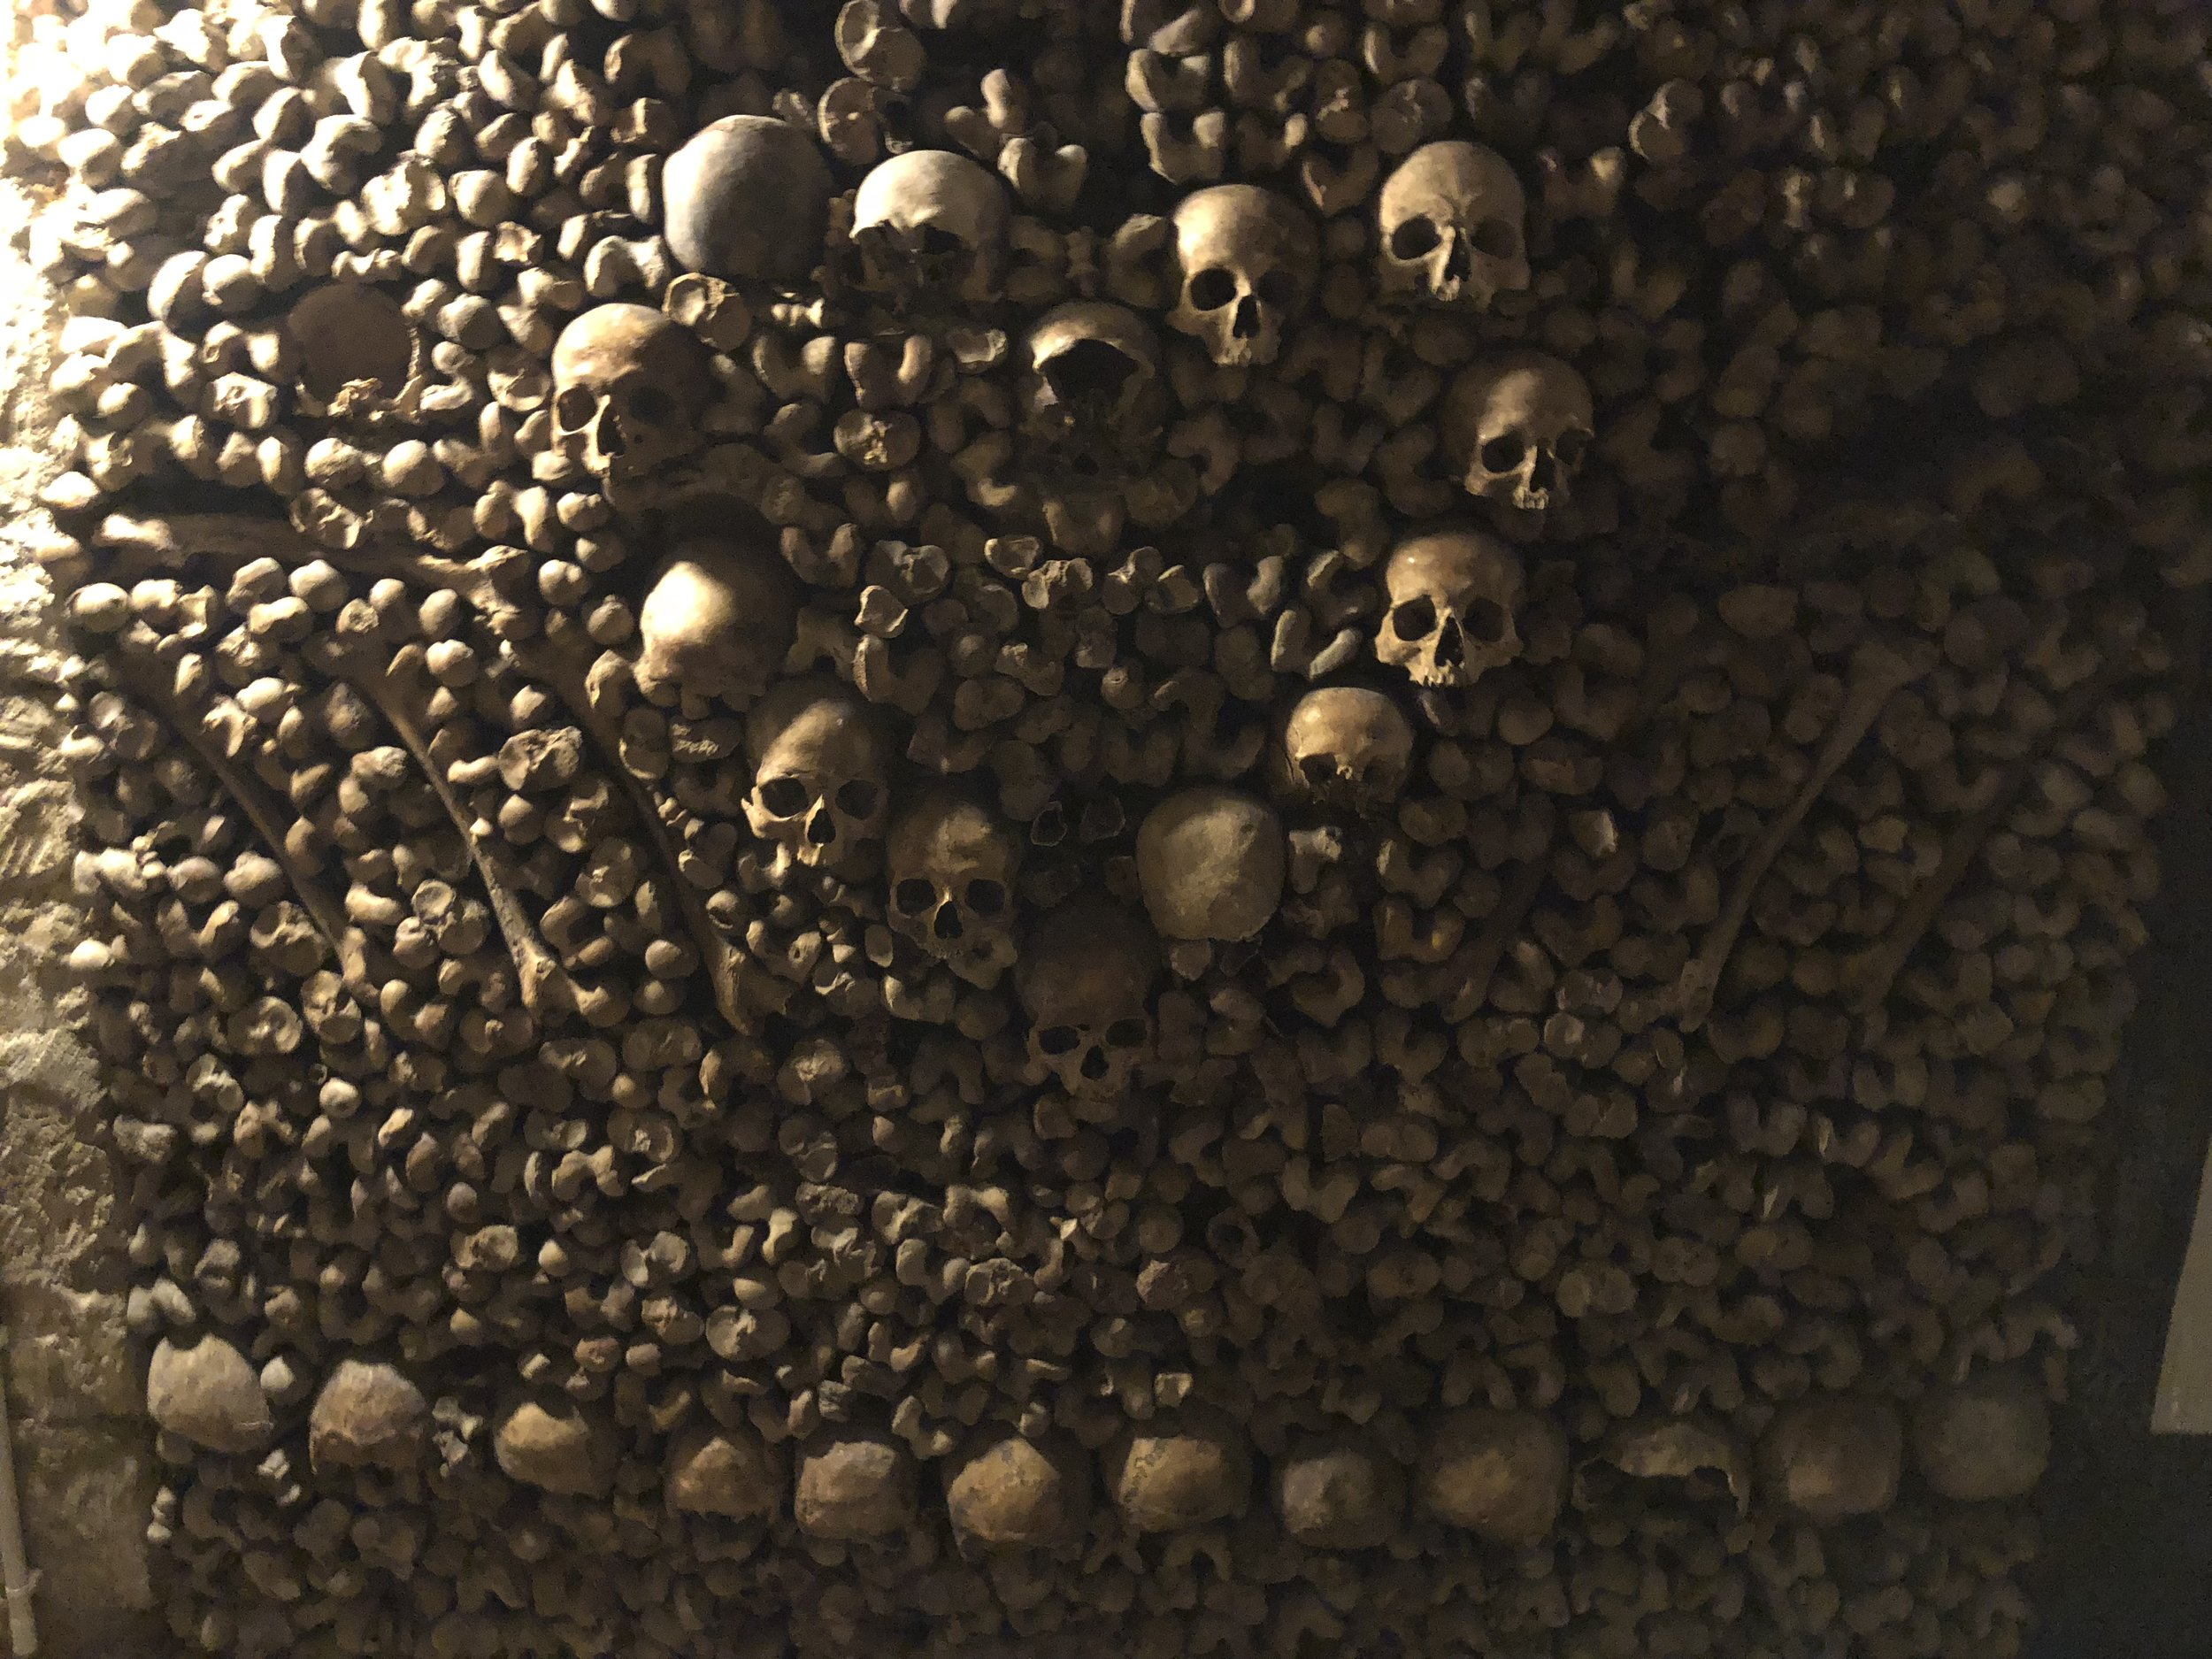 Deep in the catacombs. Do not spend the night.